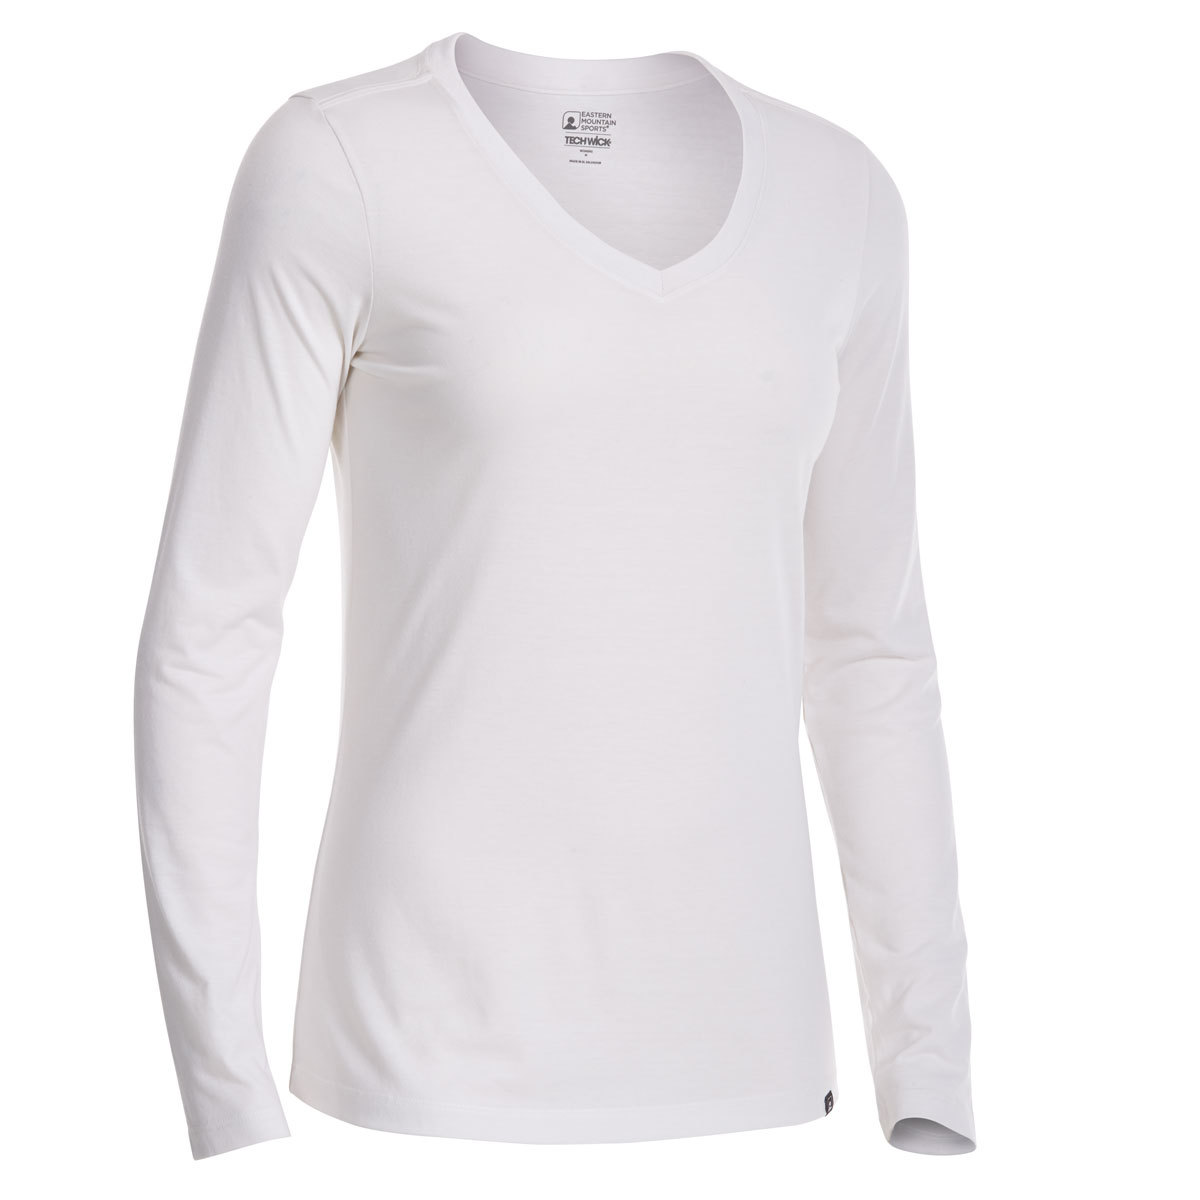 Ems Women's Techwick Vital V-Neck Long-Sleeve Tee - White, L